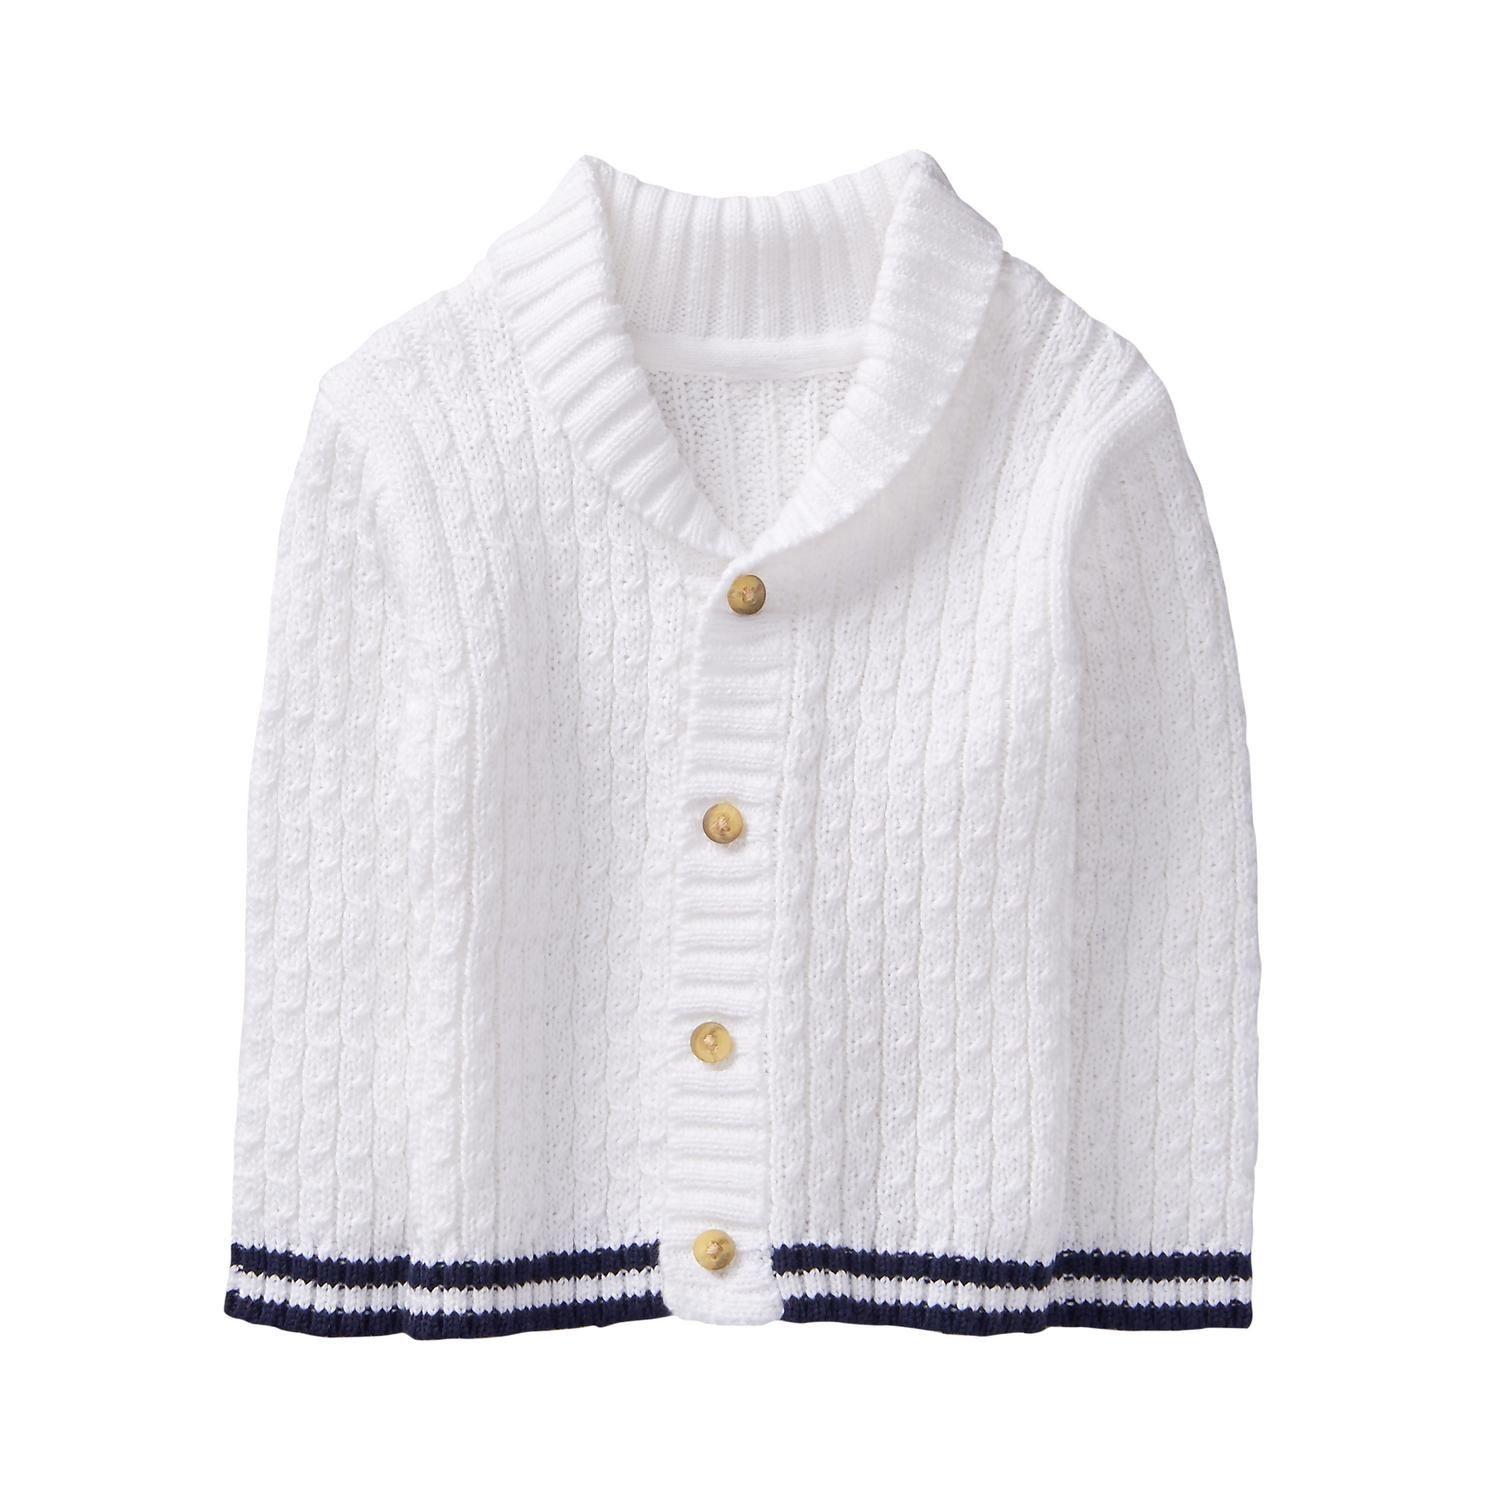 Newborn White Cable Knit Cardigan by Janie and Jack | Baby ...